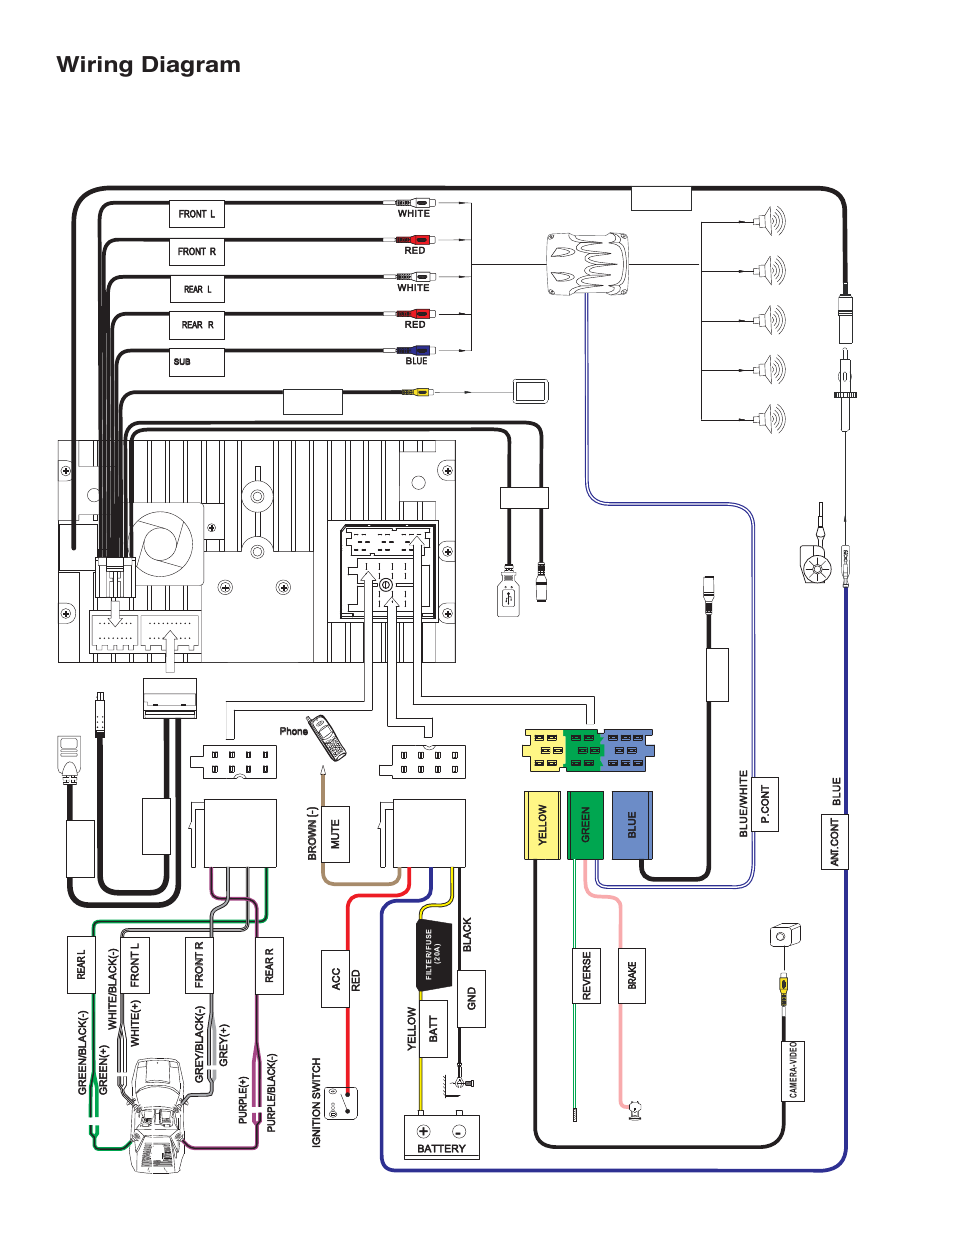 wiring diagram jensen vm9224 user manual page 4 12 hybrid car engine and transmission diagram #3